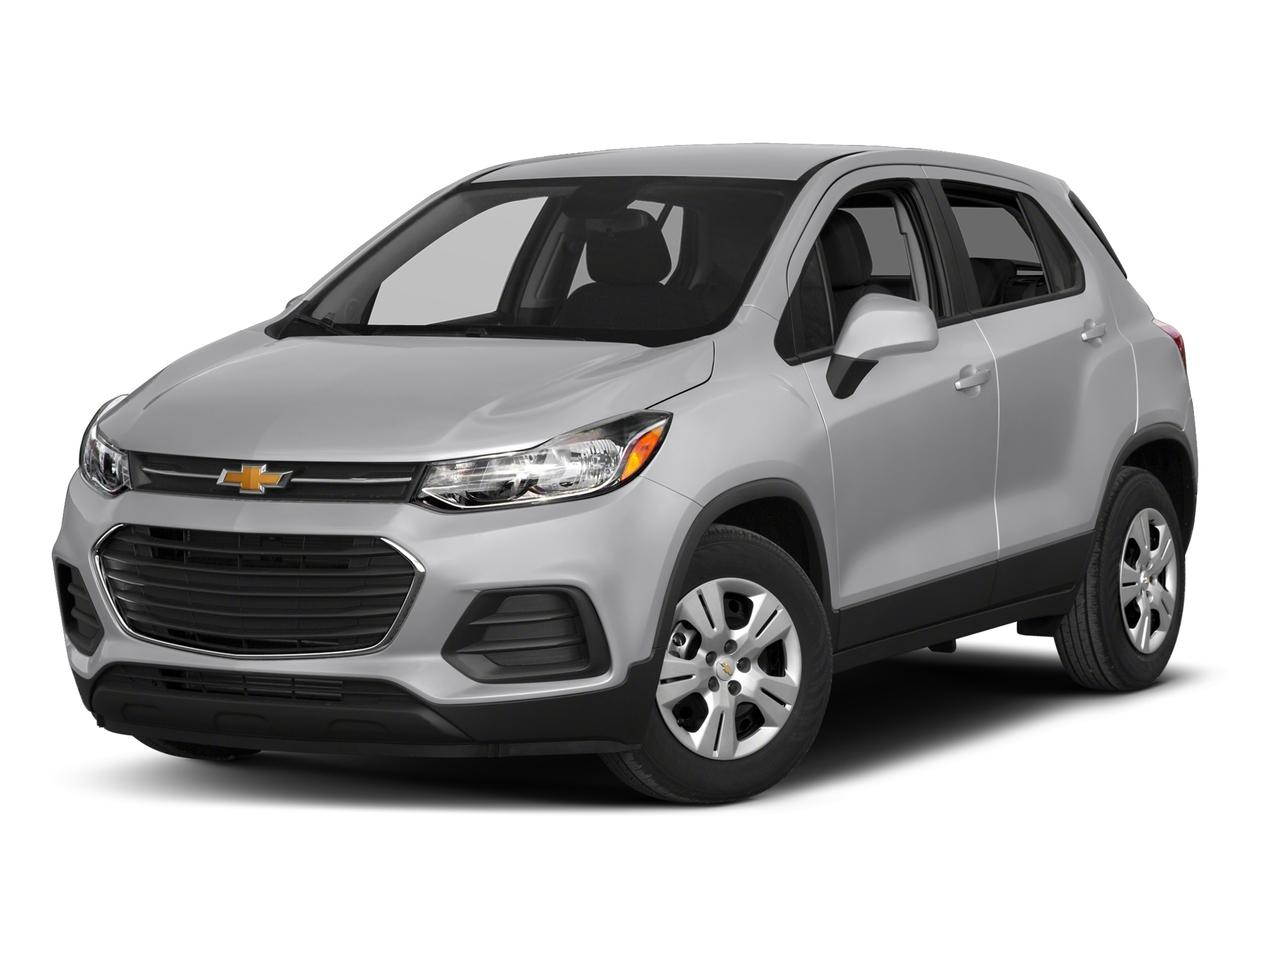 2017 Chevrolet Trax Vehicle Photo in Plainfield, IL 60586